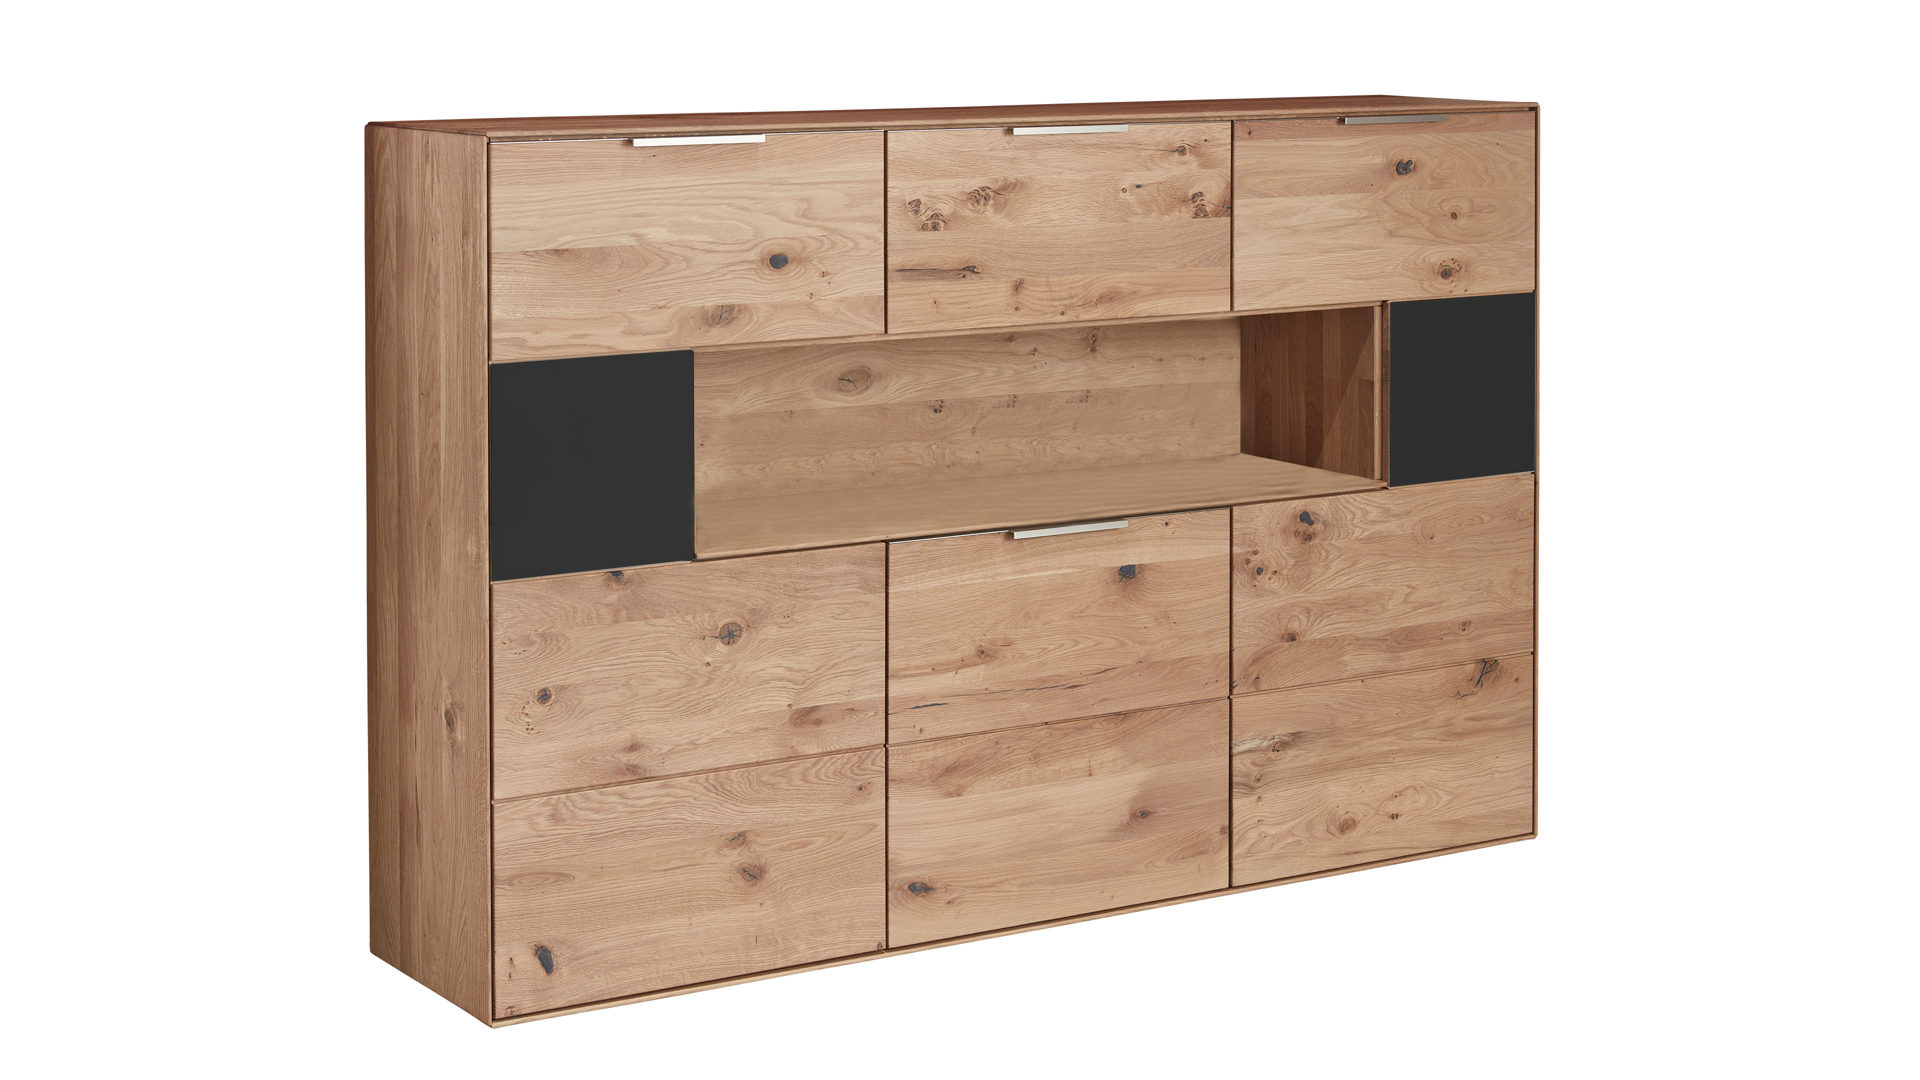 Highboard Interliving aus Holz in Grau Interliving Wohnzimmer Serie 2005 – Highboard Asteiche & anthrazitfarbenes Glas – drei Türen, eine Klappe